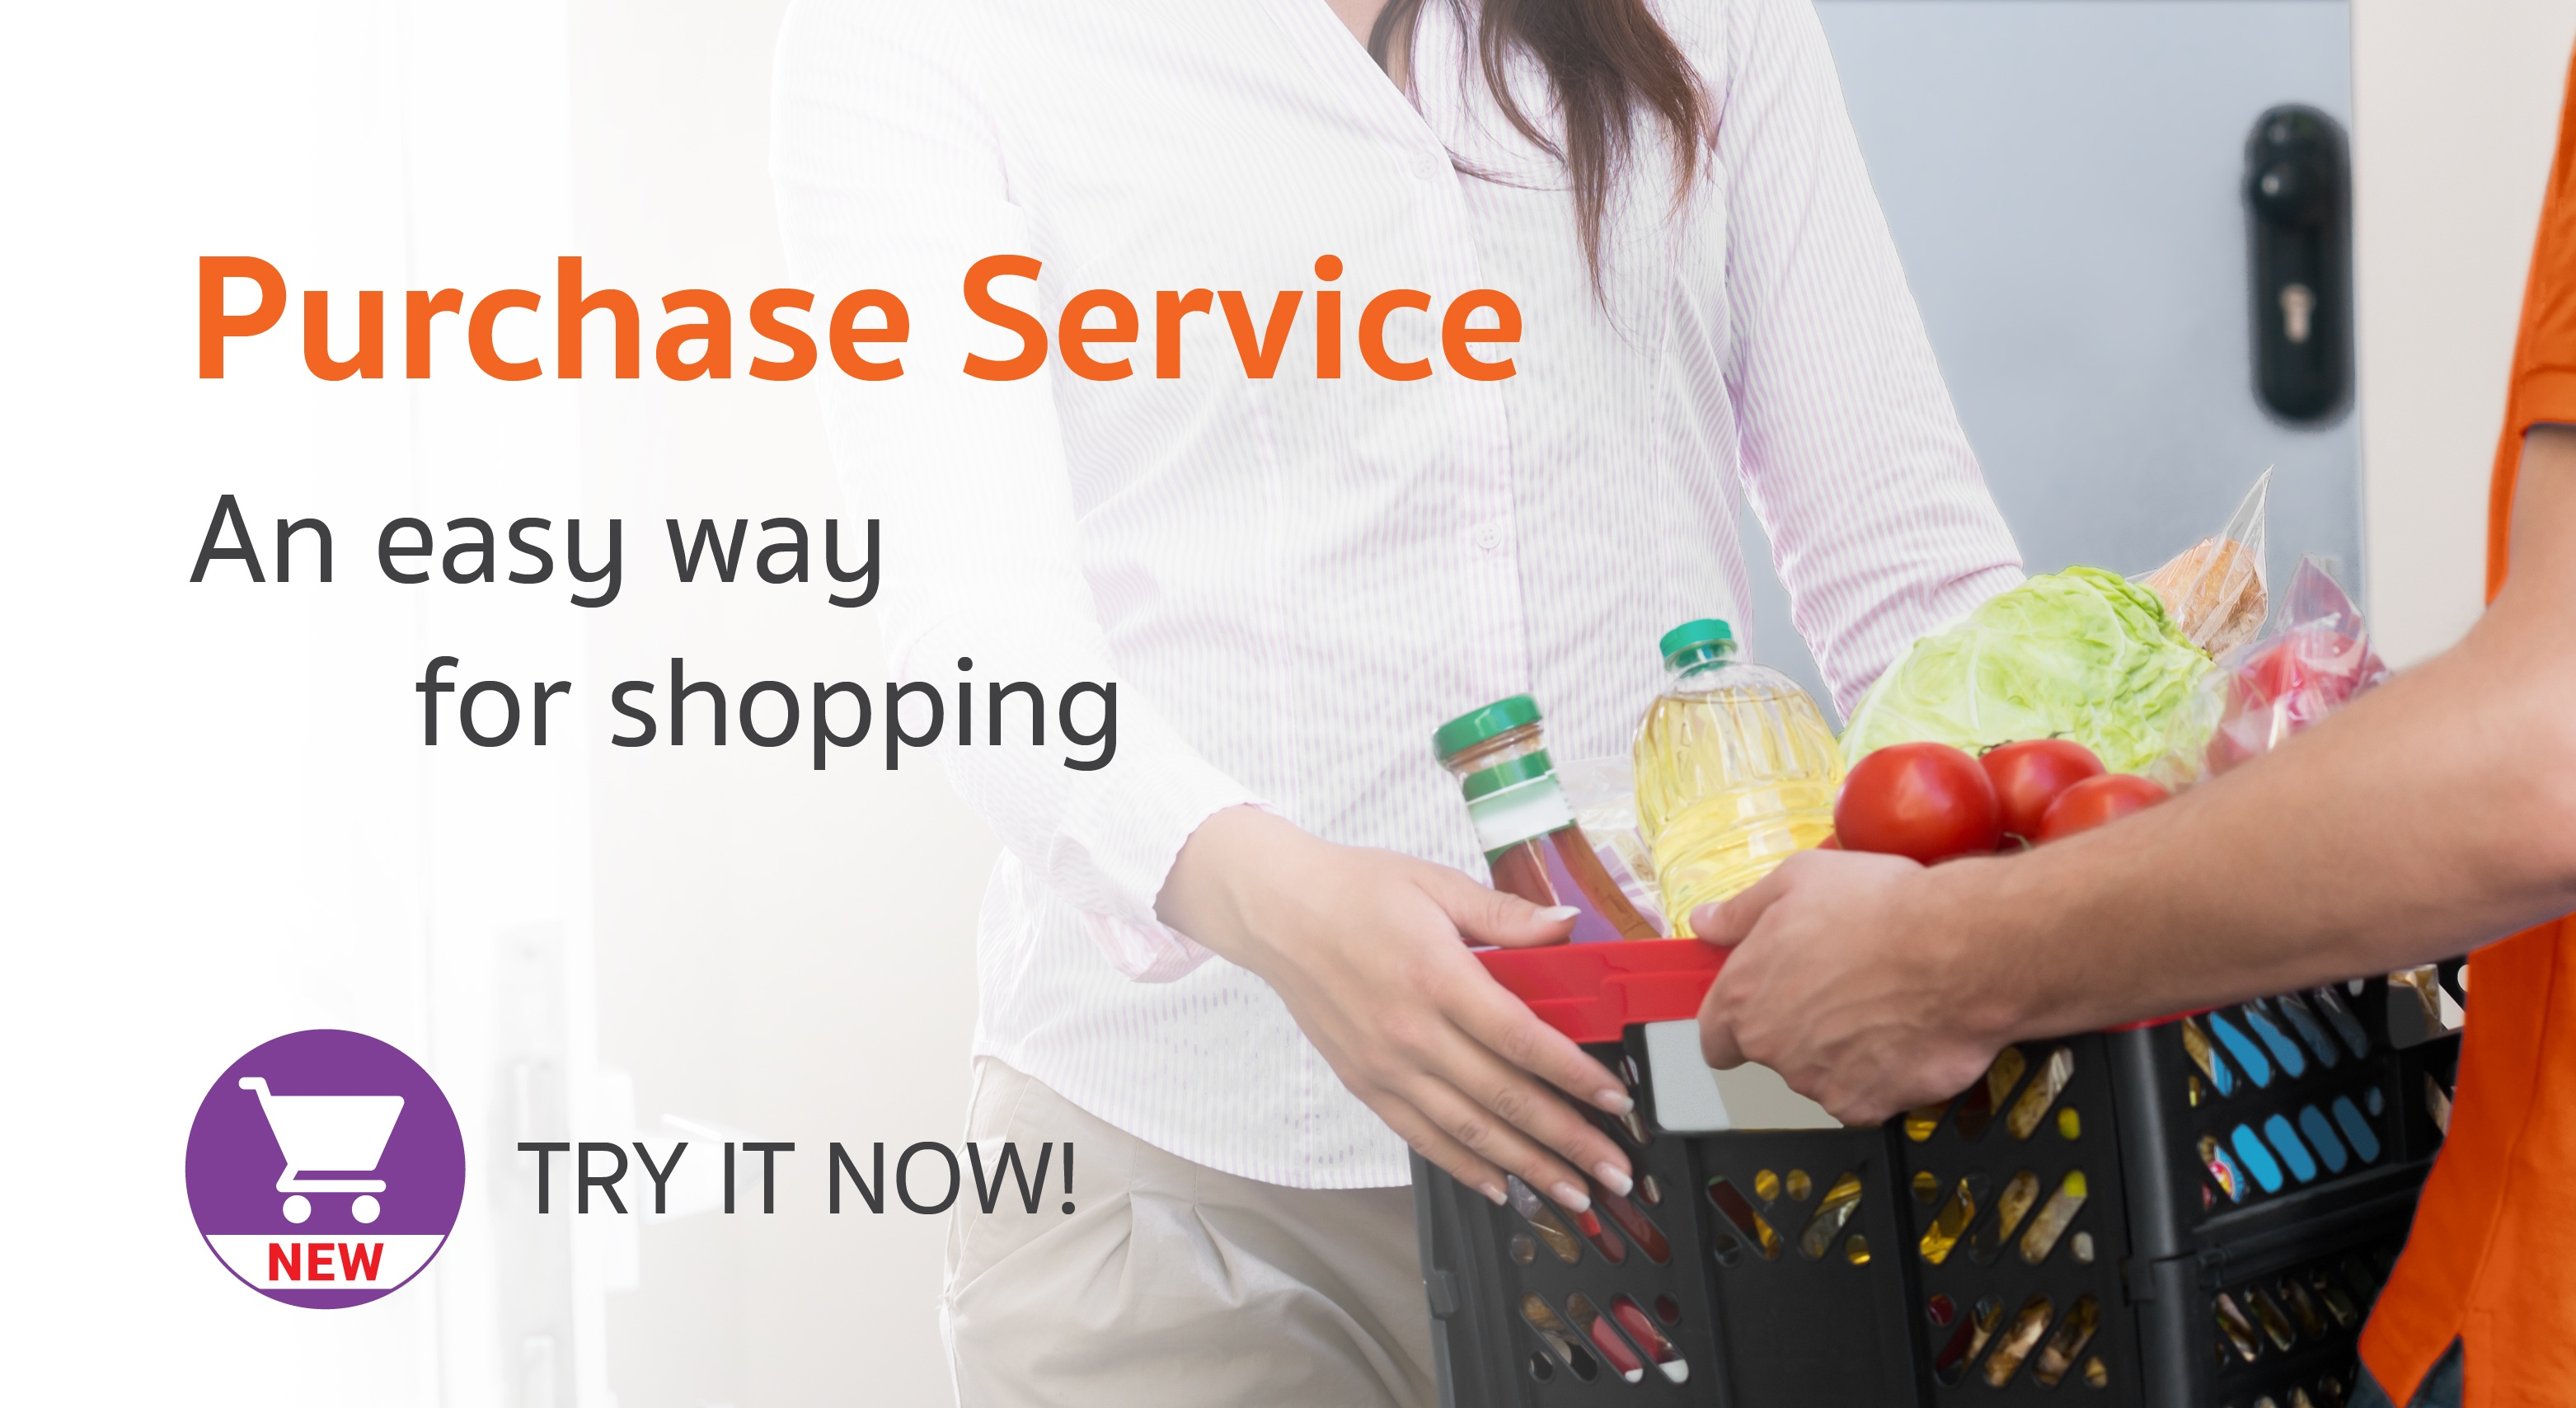 """Purchase Service"", the shopping assistance that fits with the demands of busy customers in Bangkok"